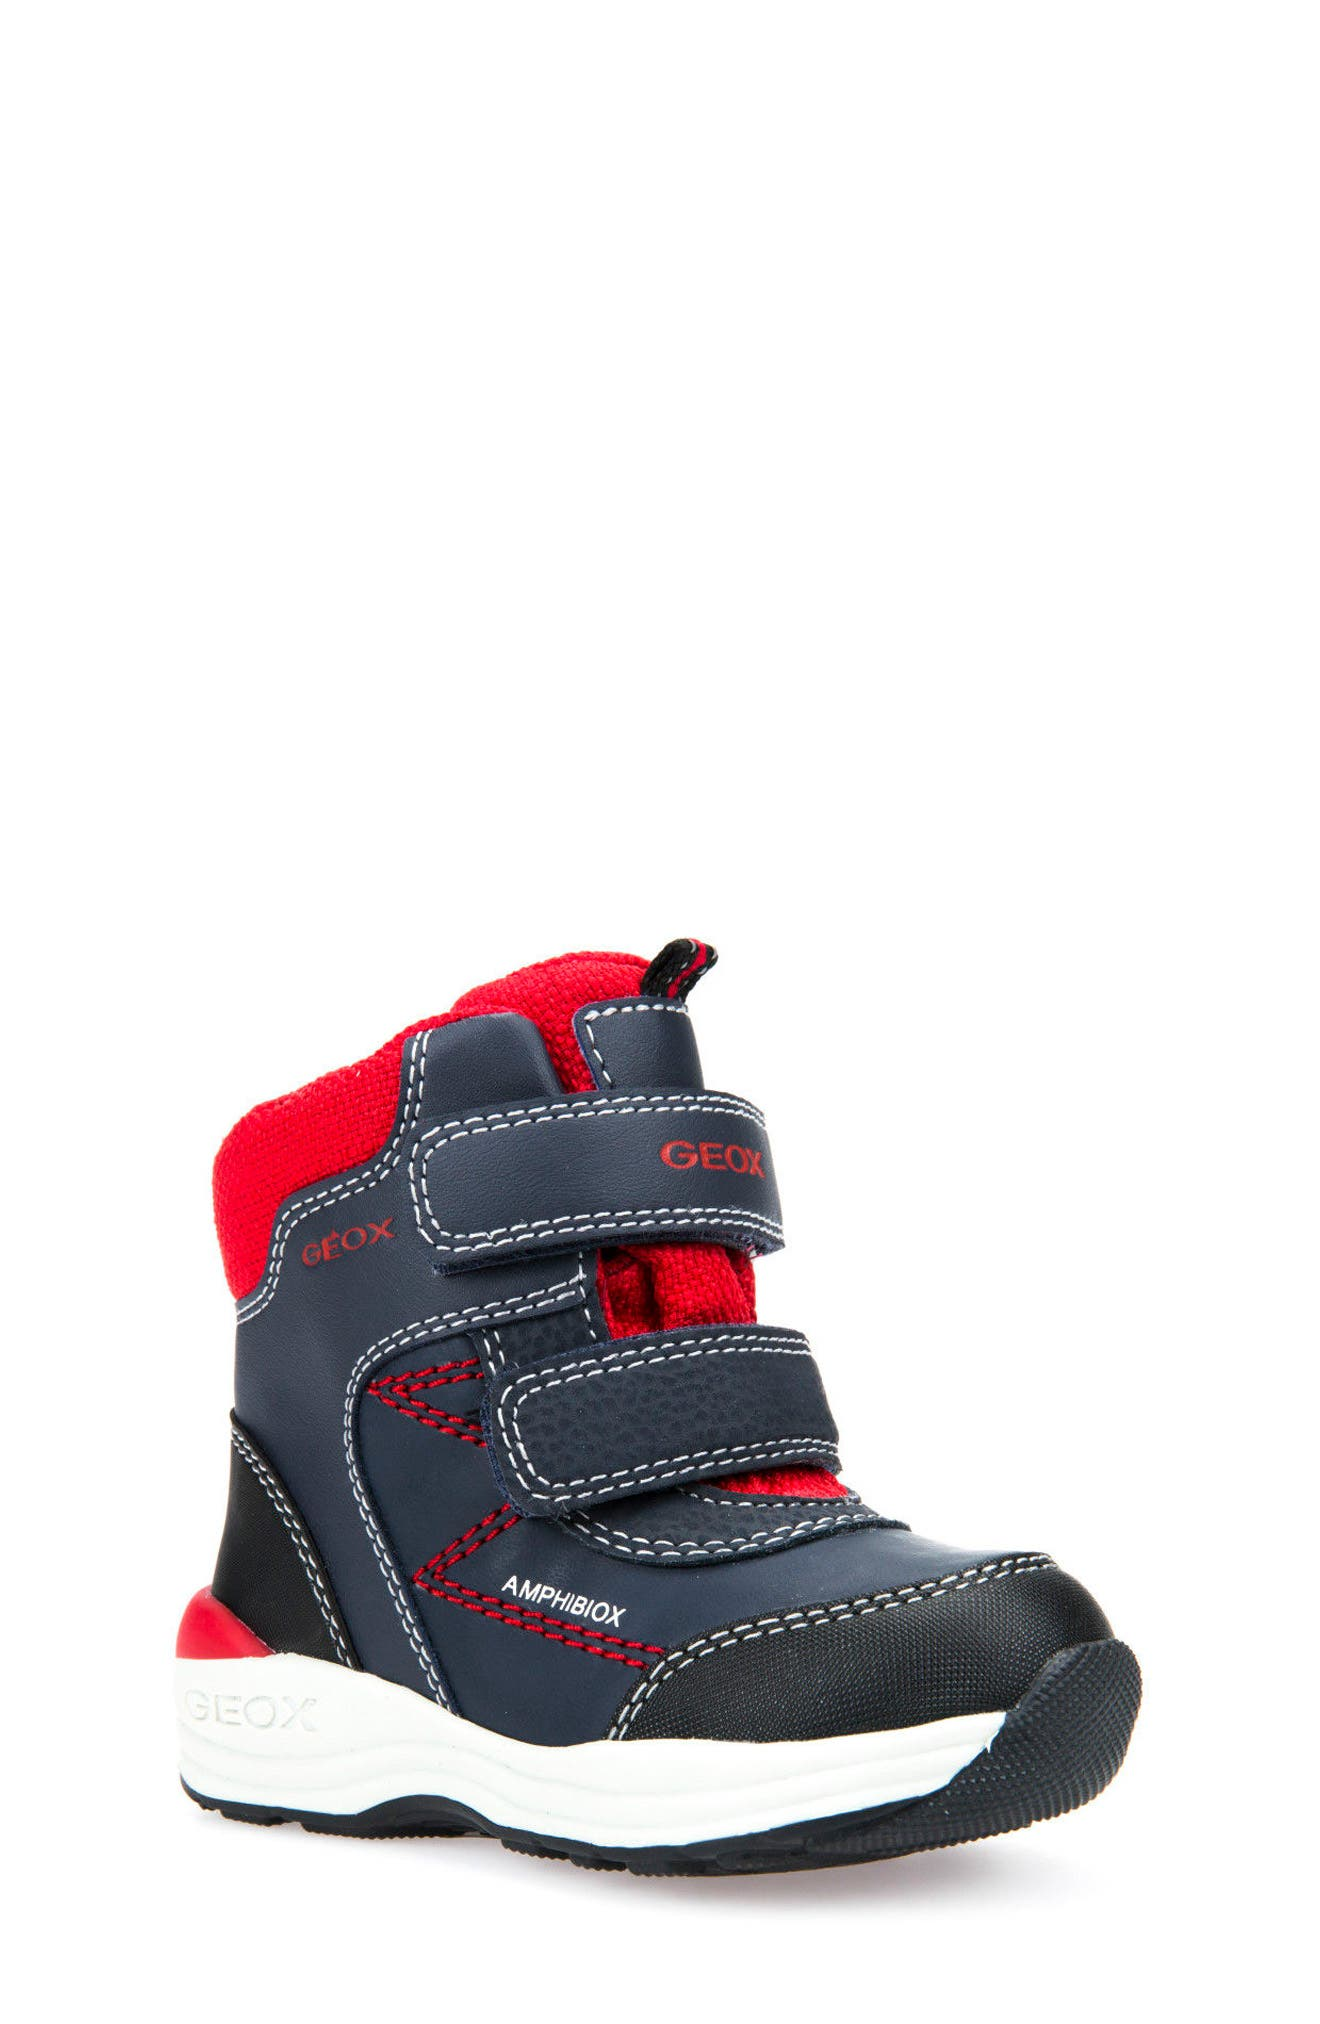 Main Image - Geox Gulp ABX Waterproof Boot (Walker & Toddler)